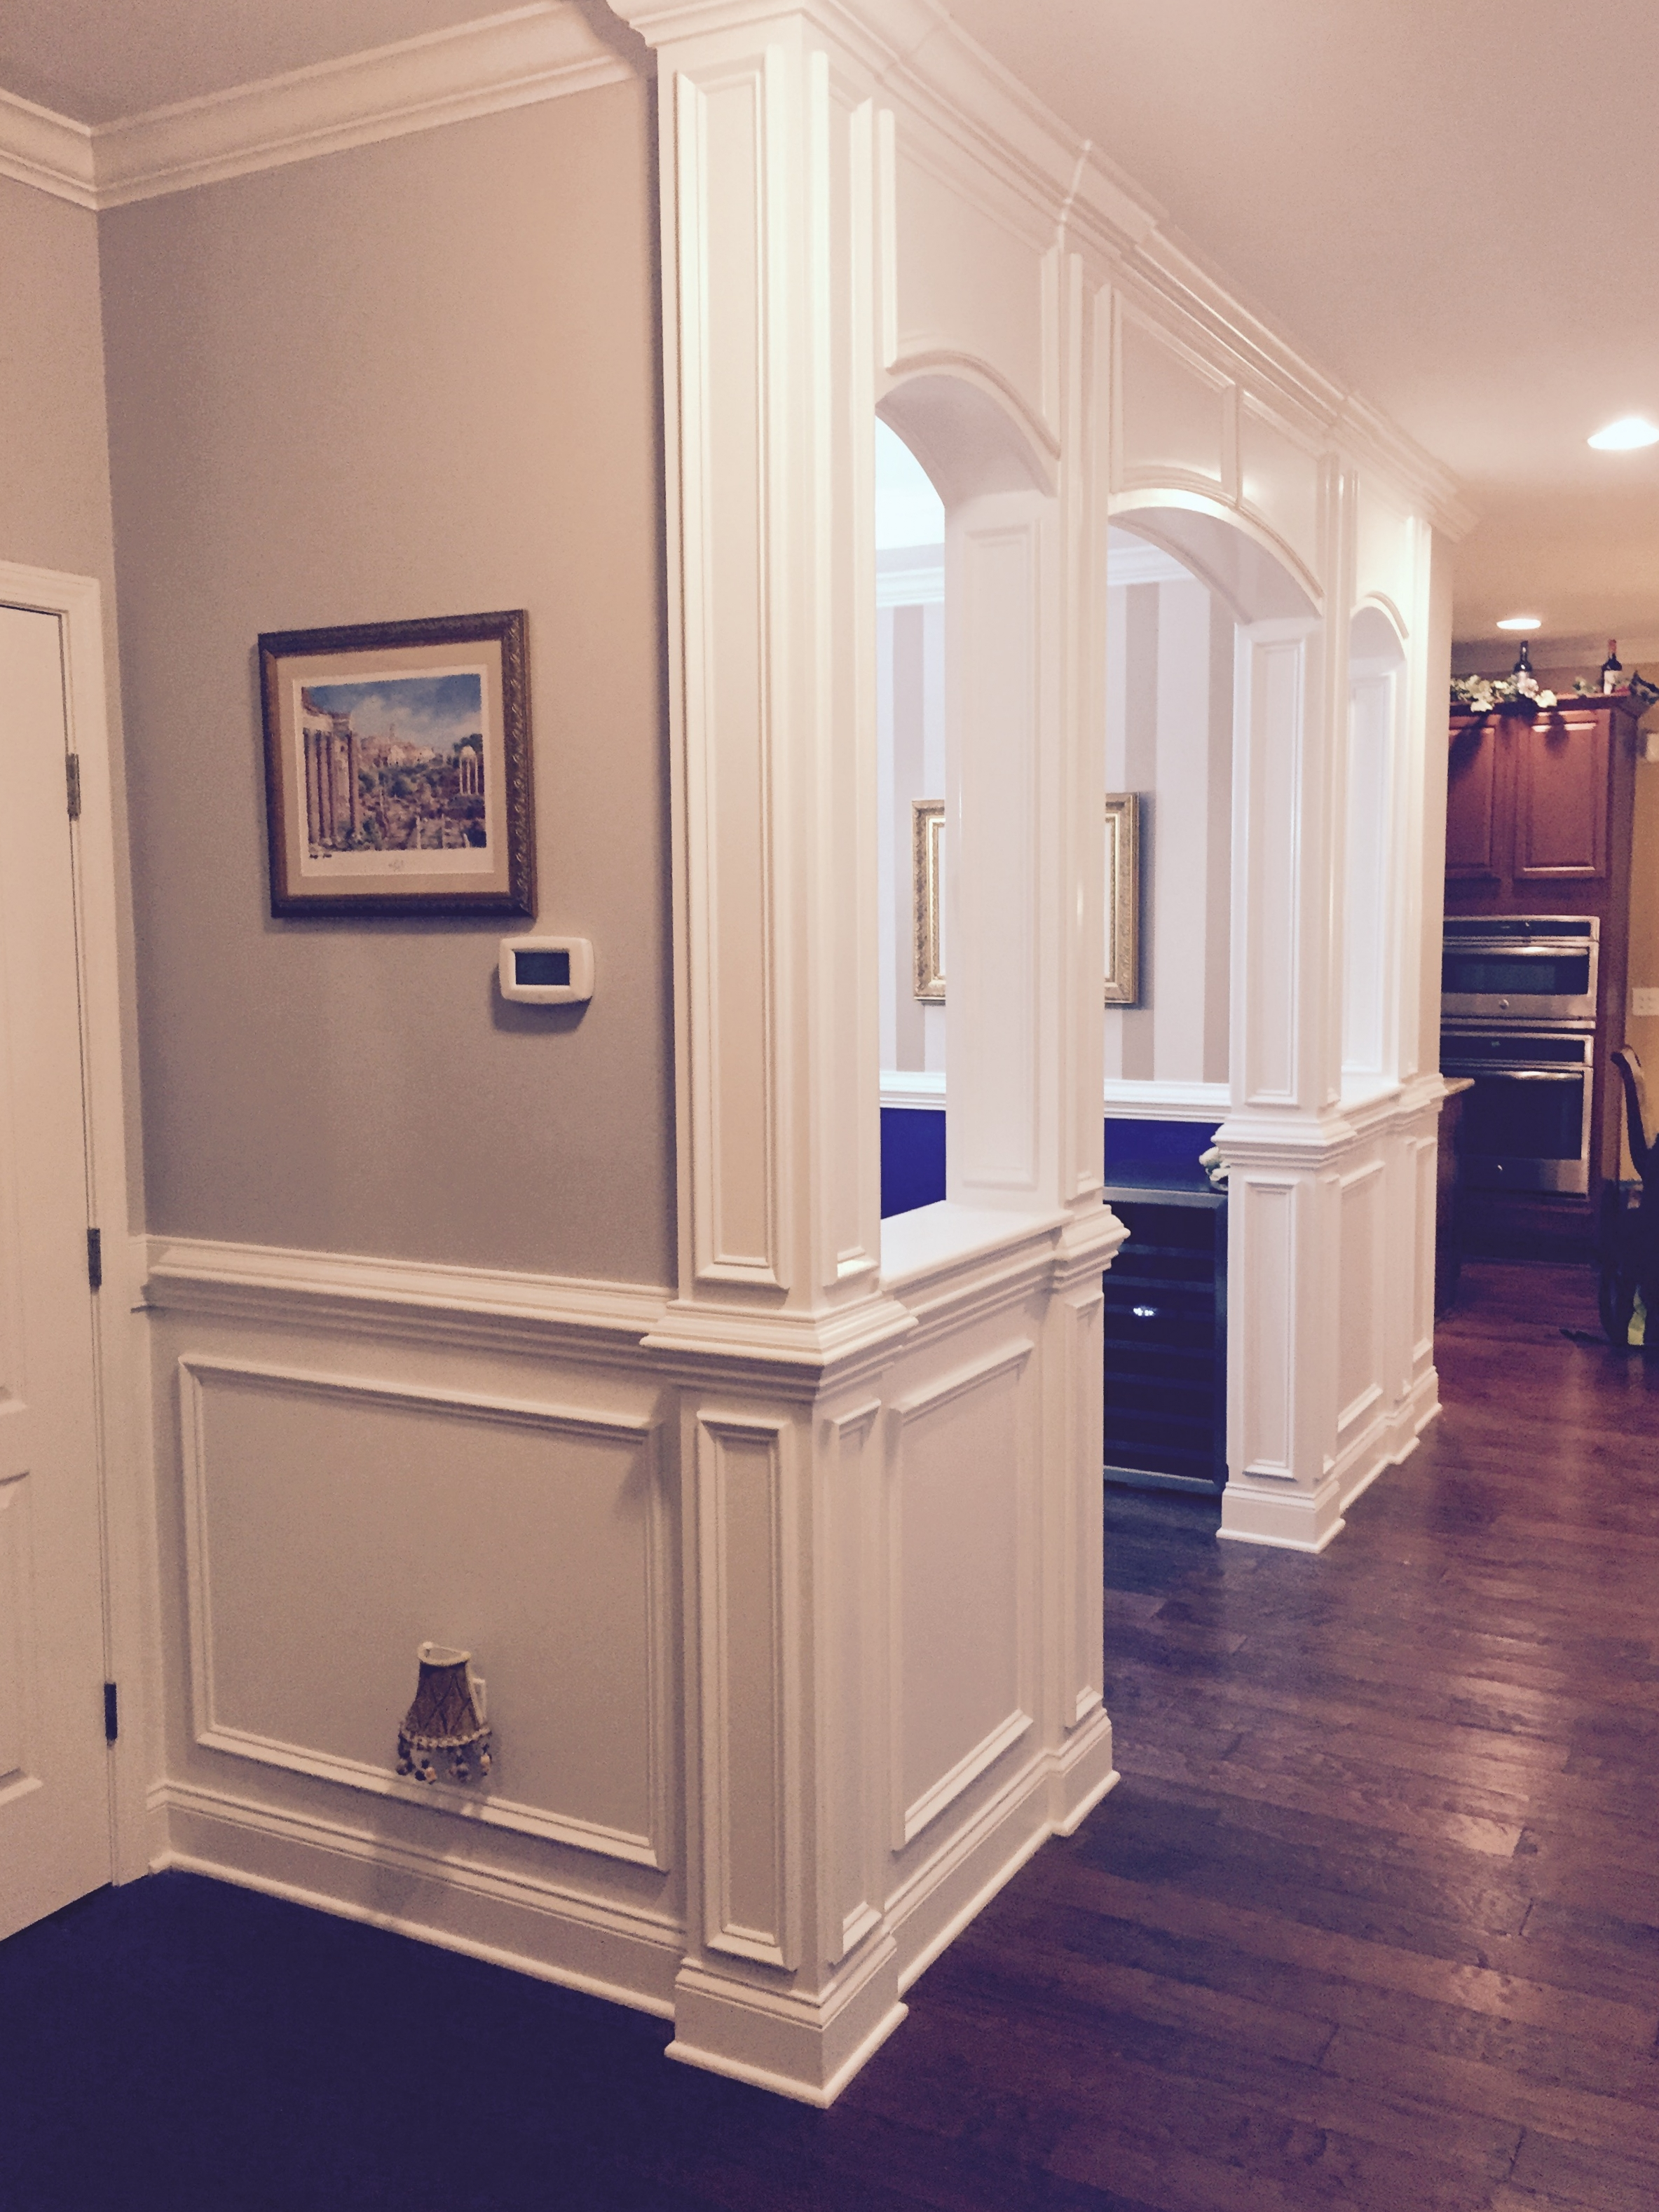 Decorative & Load-Bearing Columns with Crown